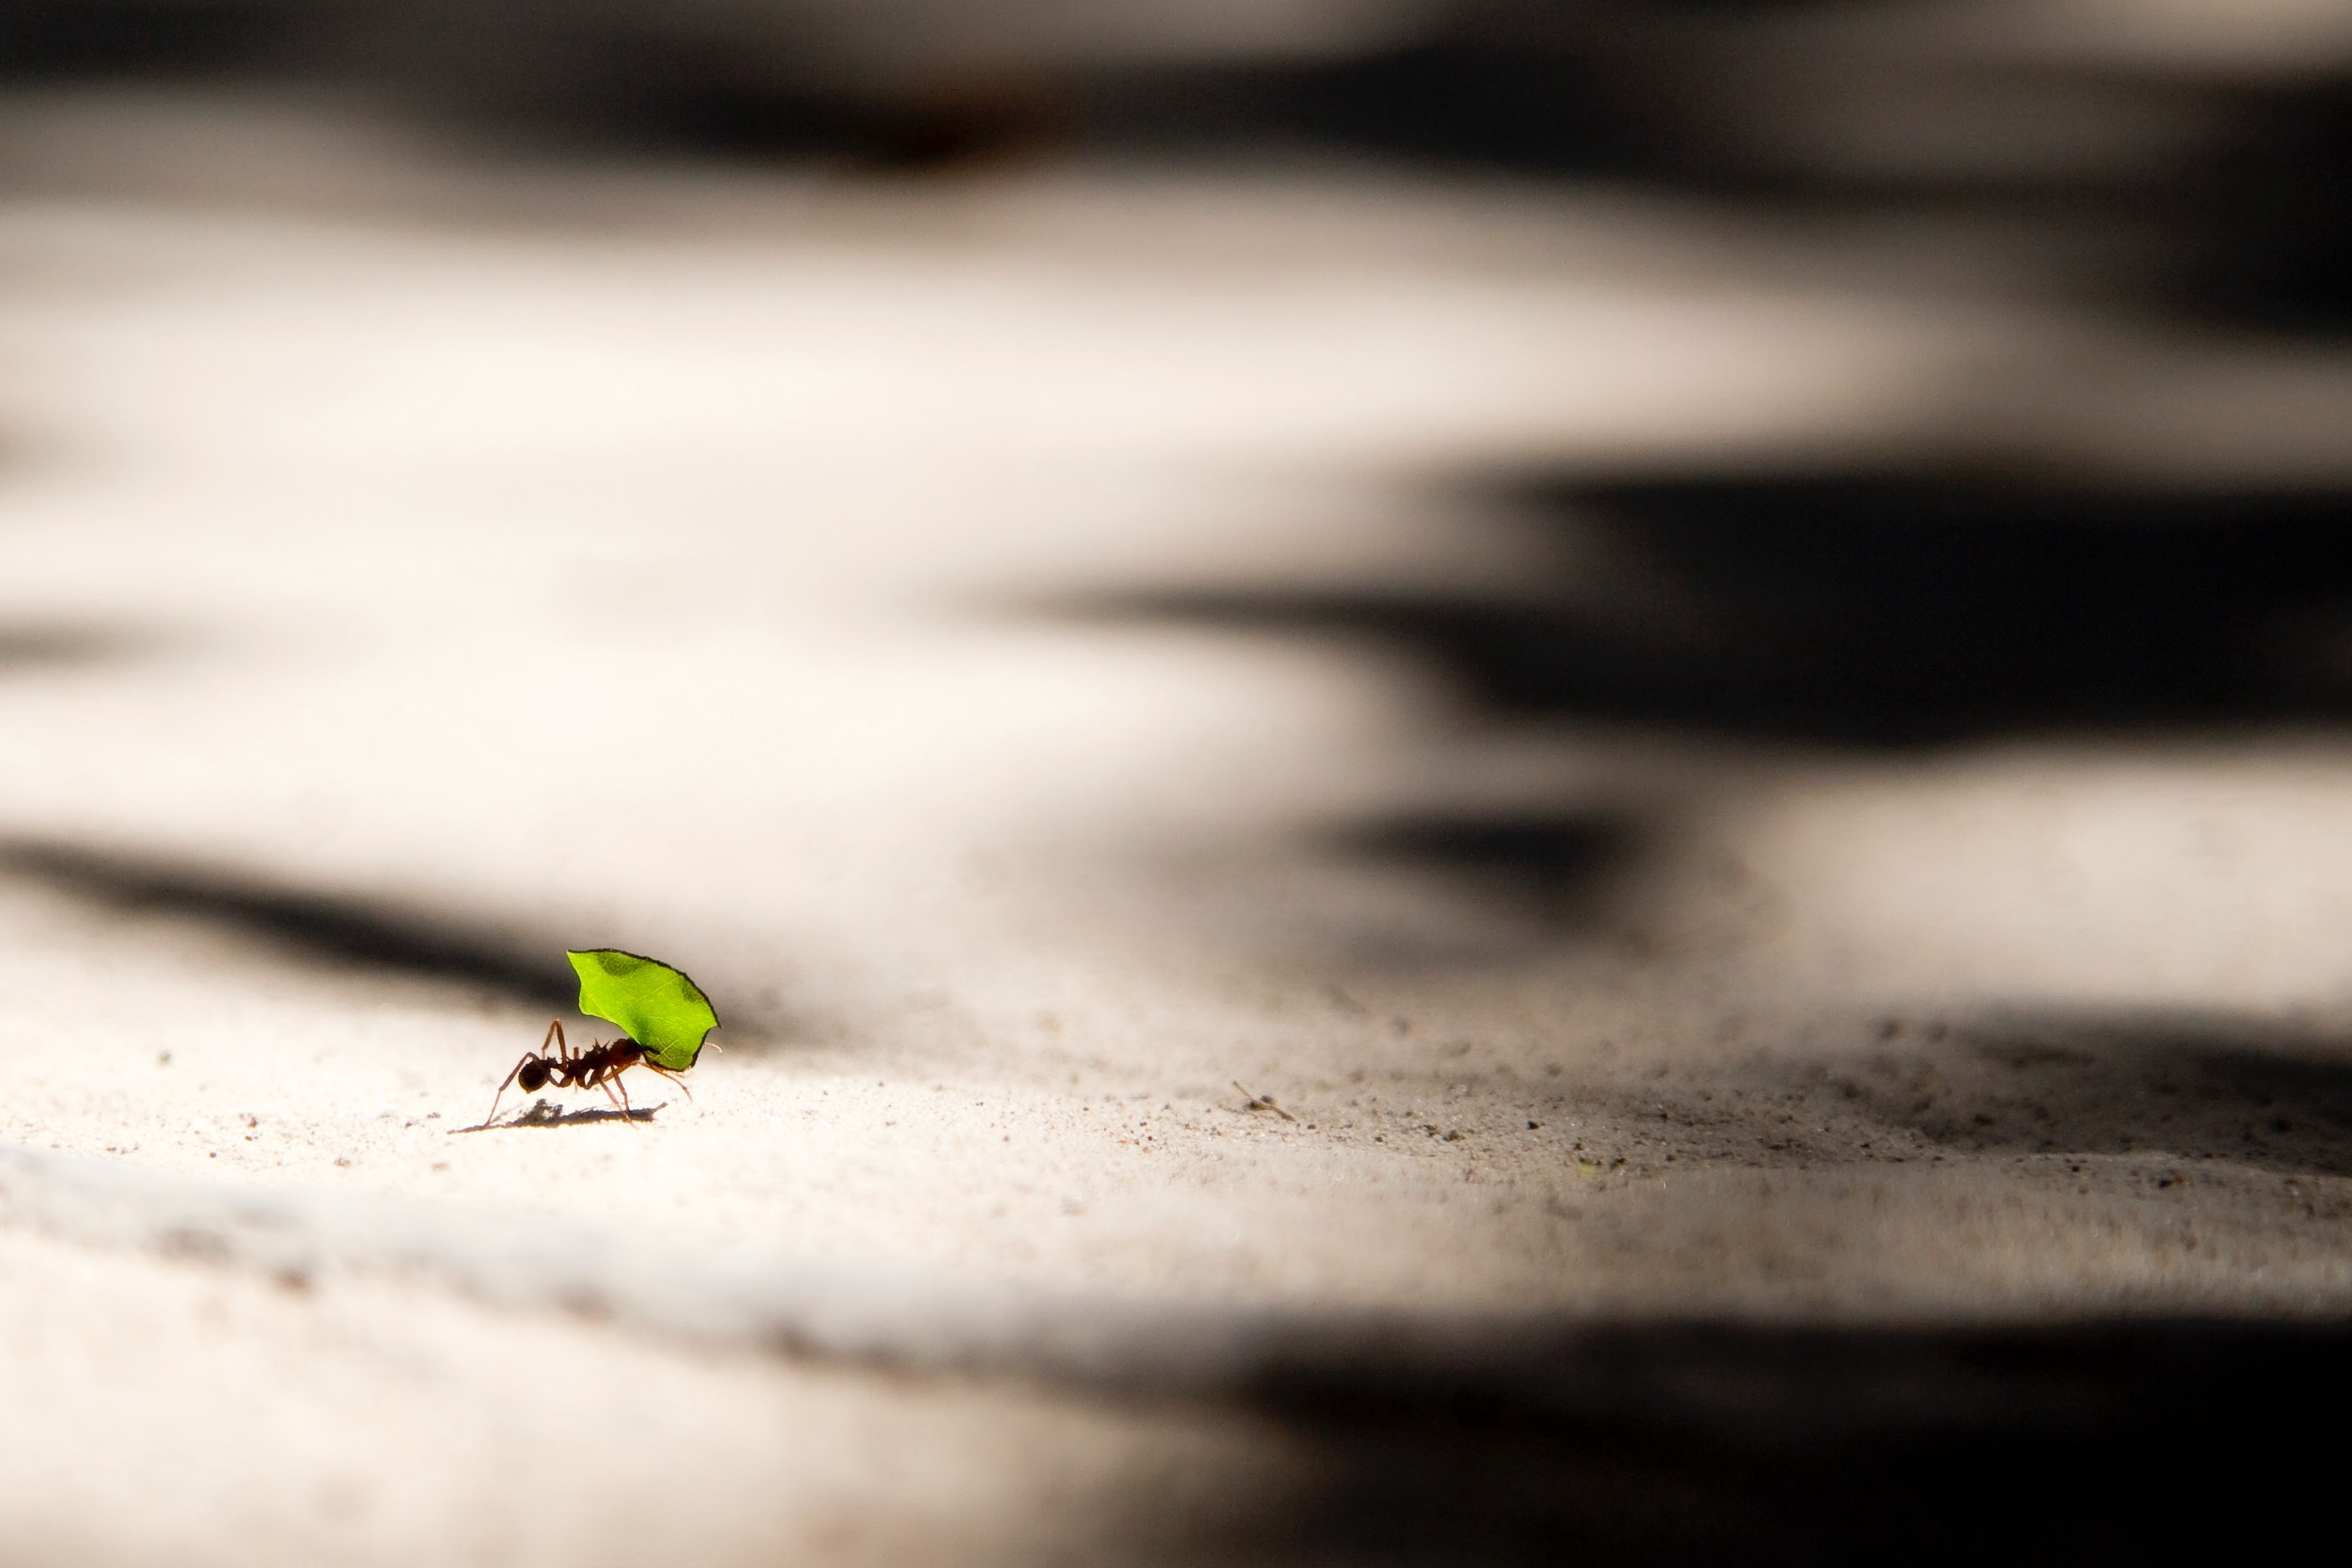 A small solitary ant carrying a leaf across a large, flat surface.